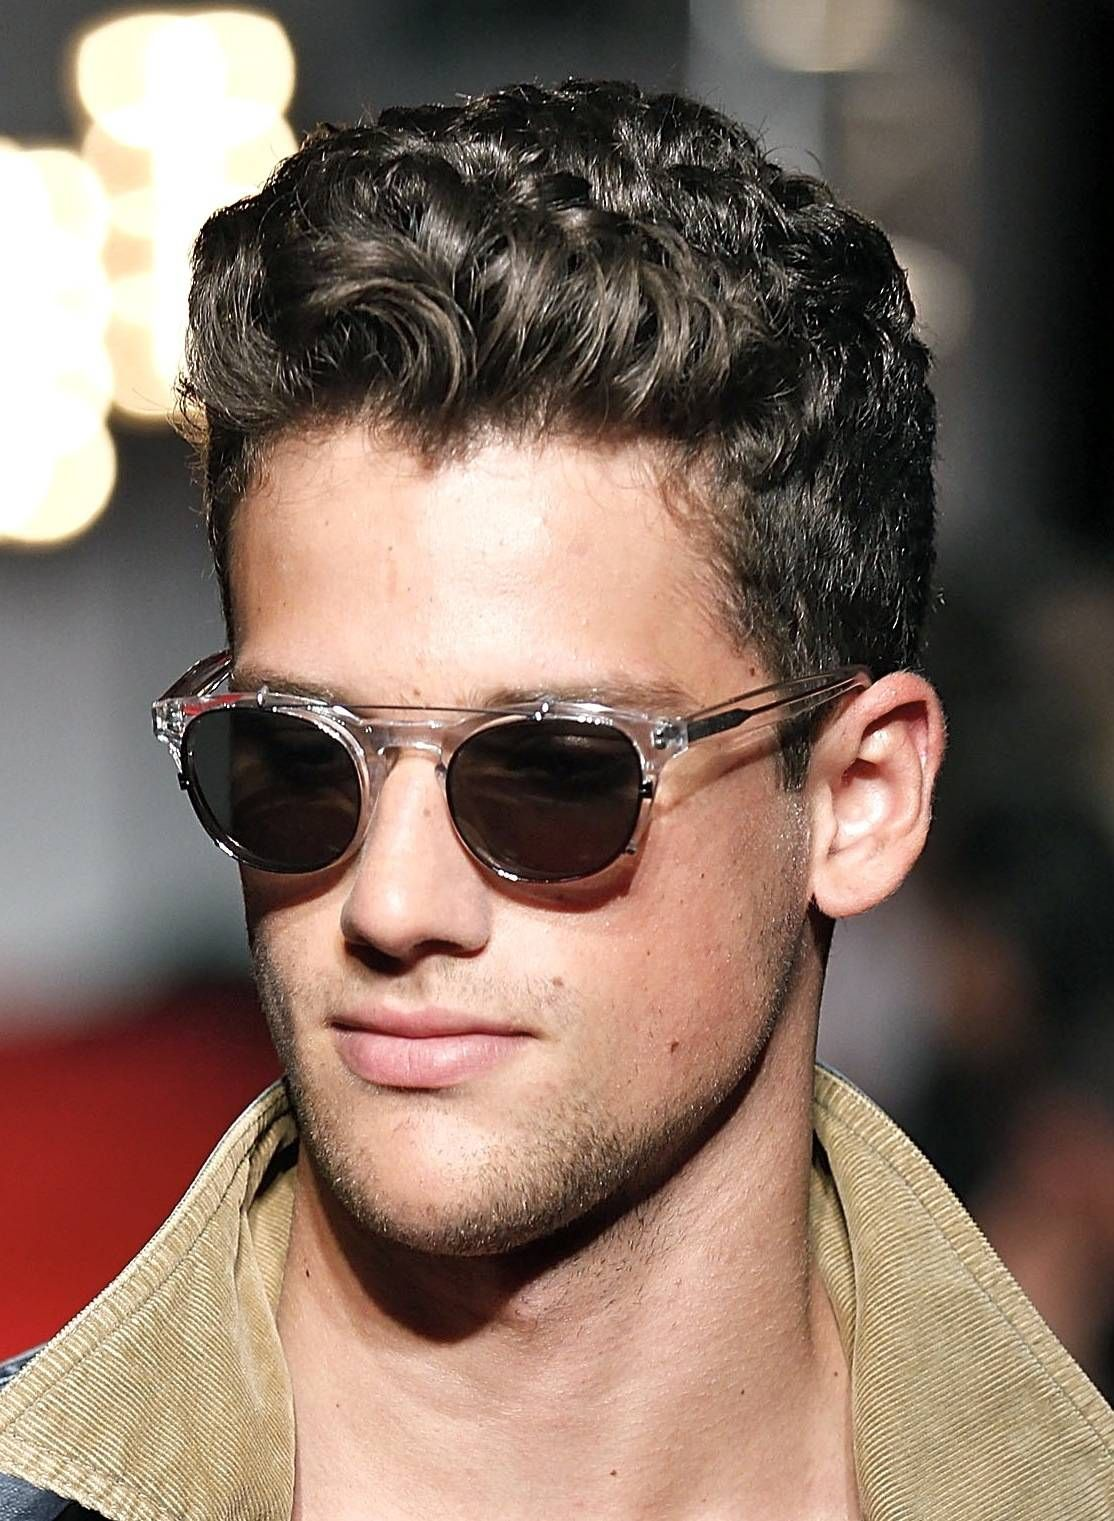 20 cool curly hairstyles for men   short haircuts, haircuts and